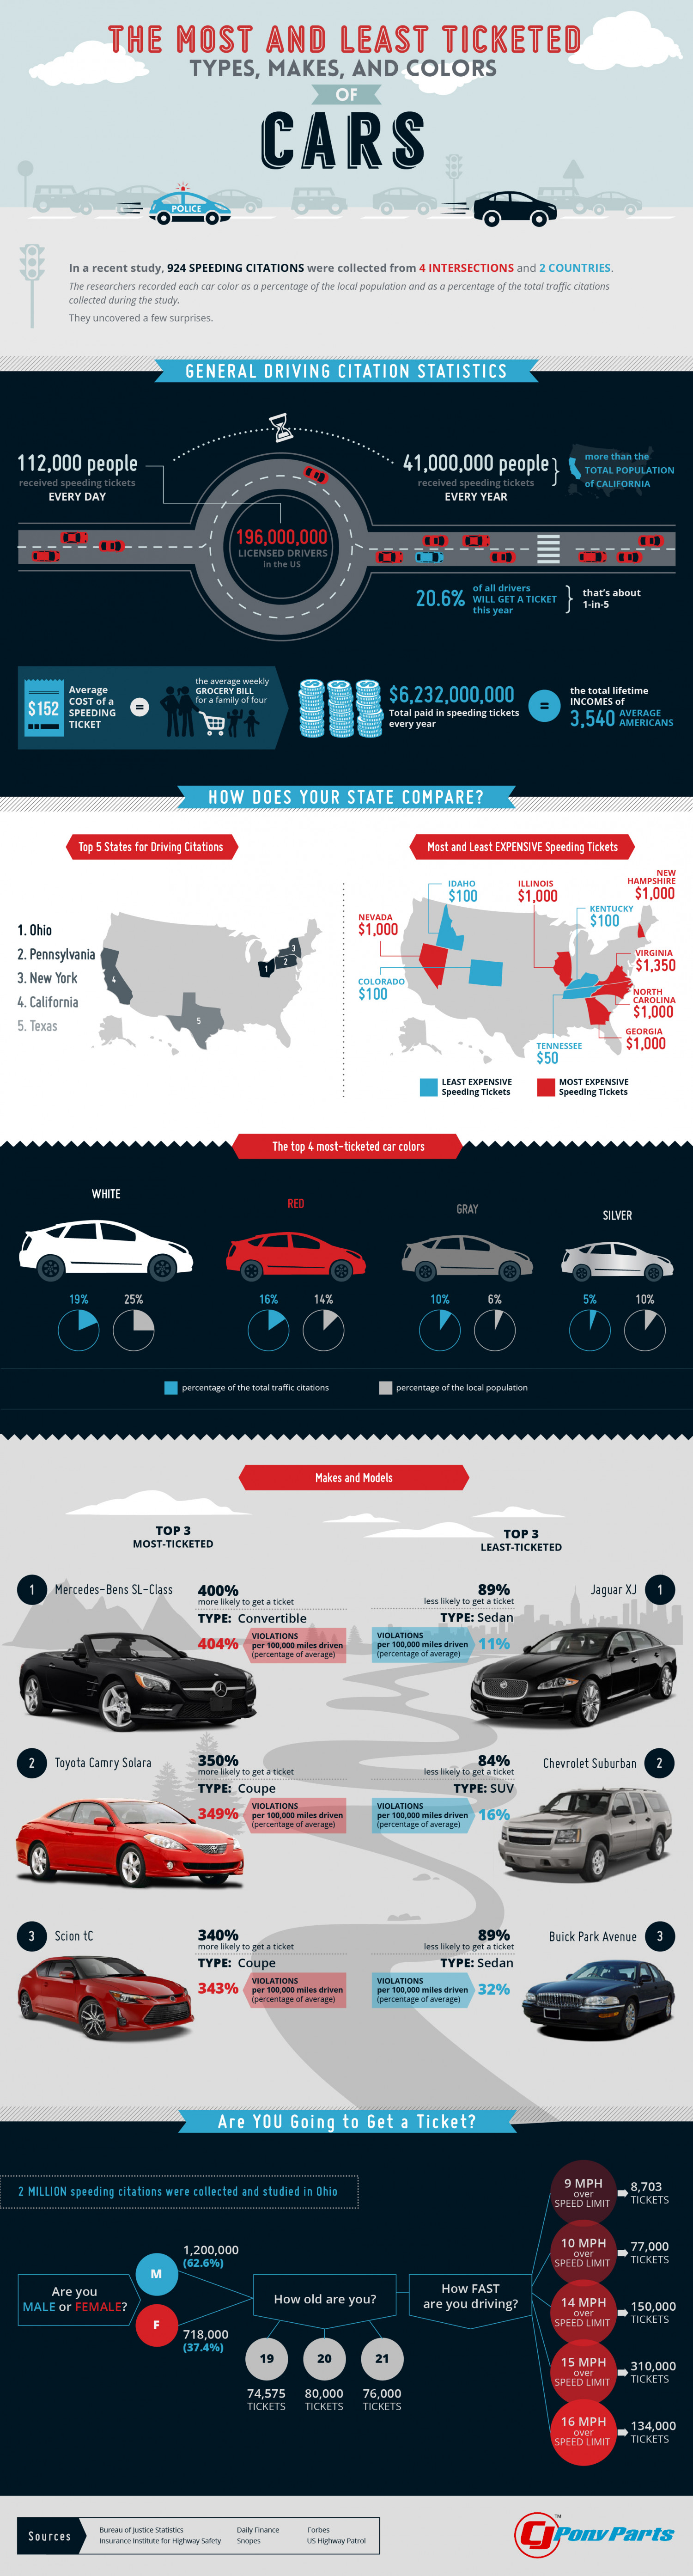 The Most and Least Ticketed Types, Makes, and Colors of Cars Infographic